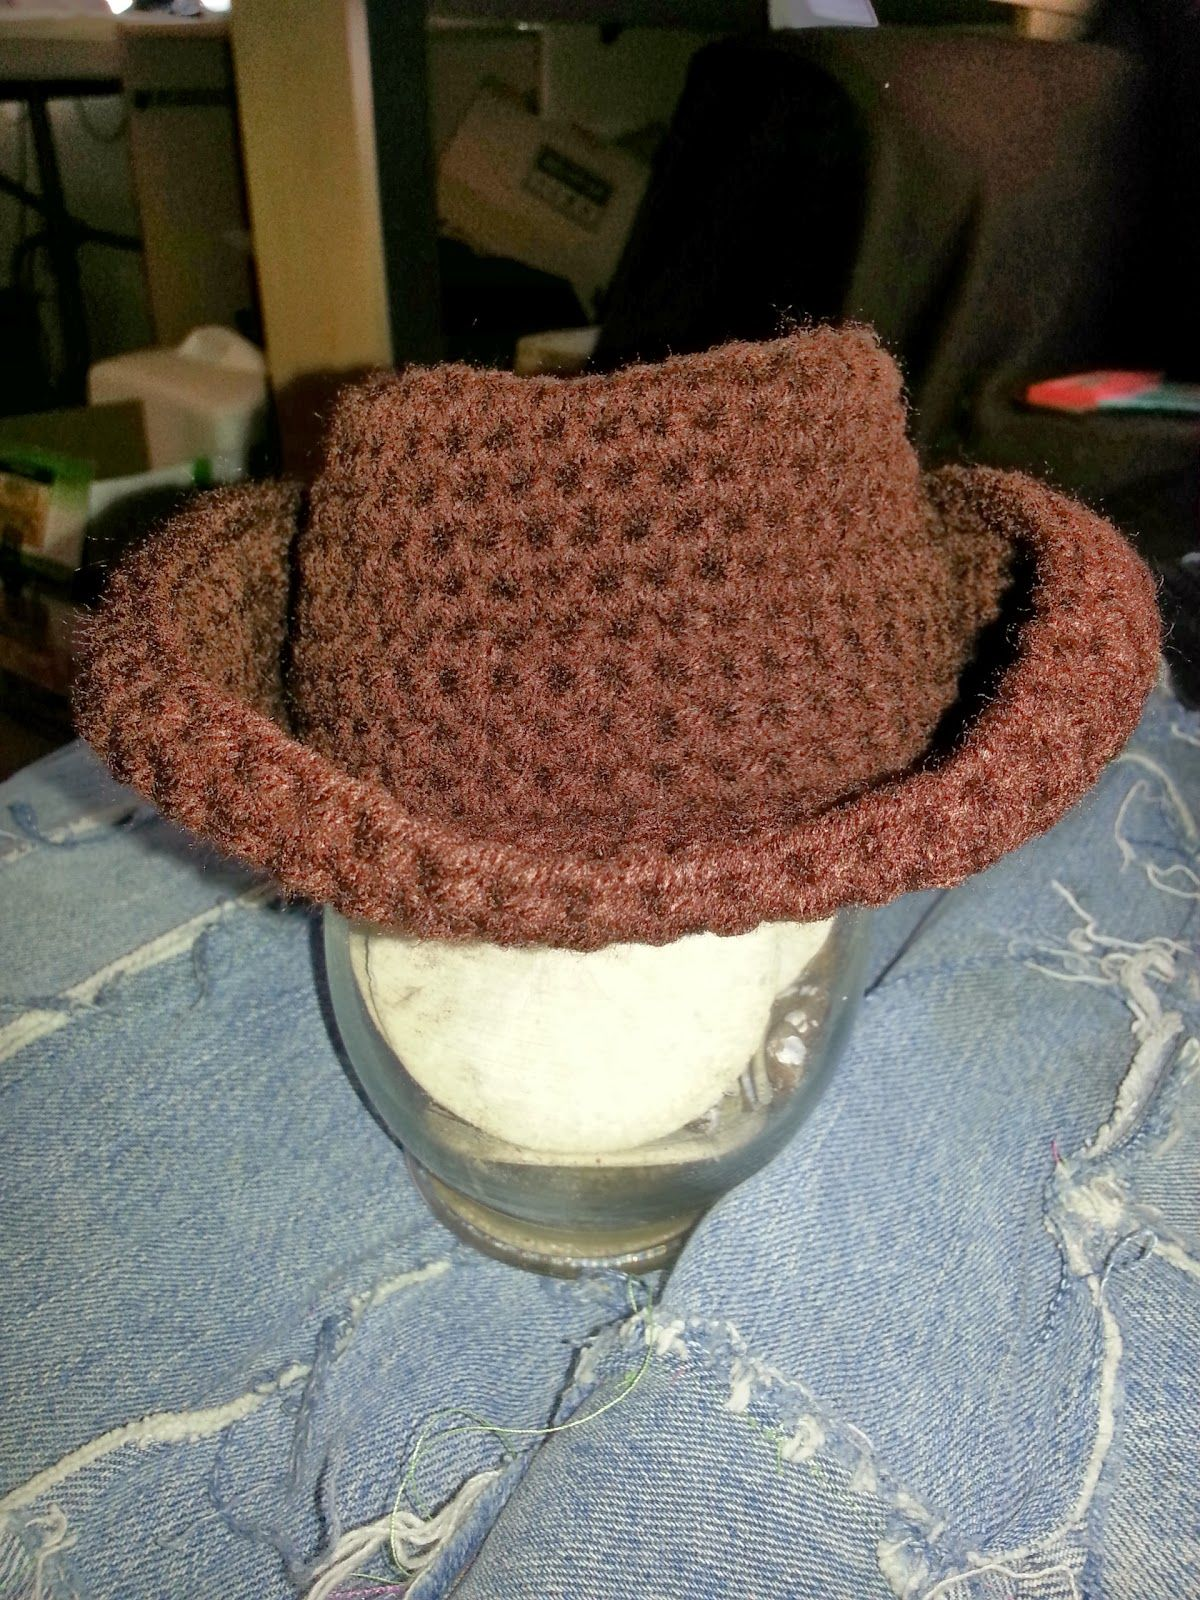 This blog is about my hobbies such as sewing, crafting, crocheting ...